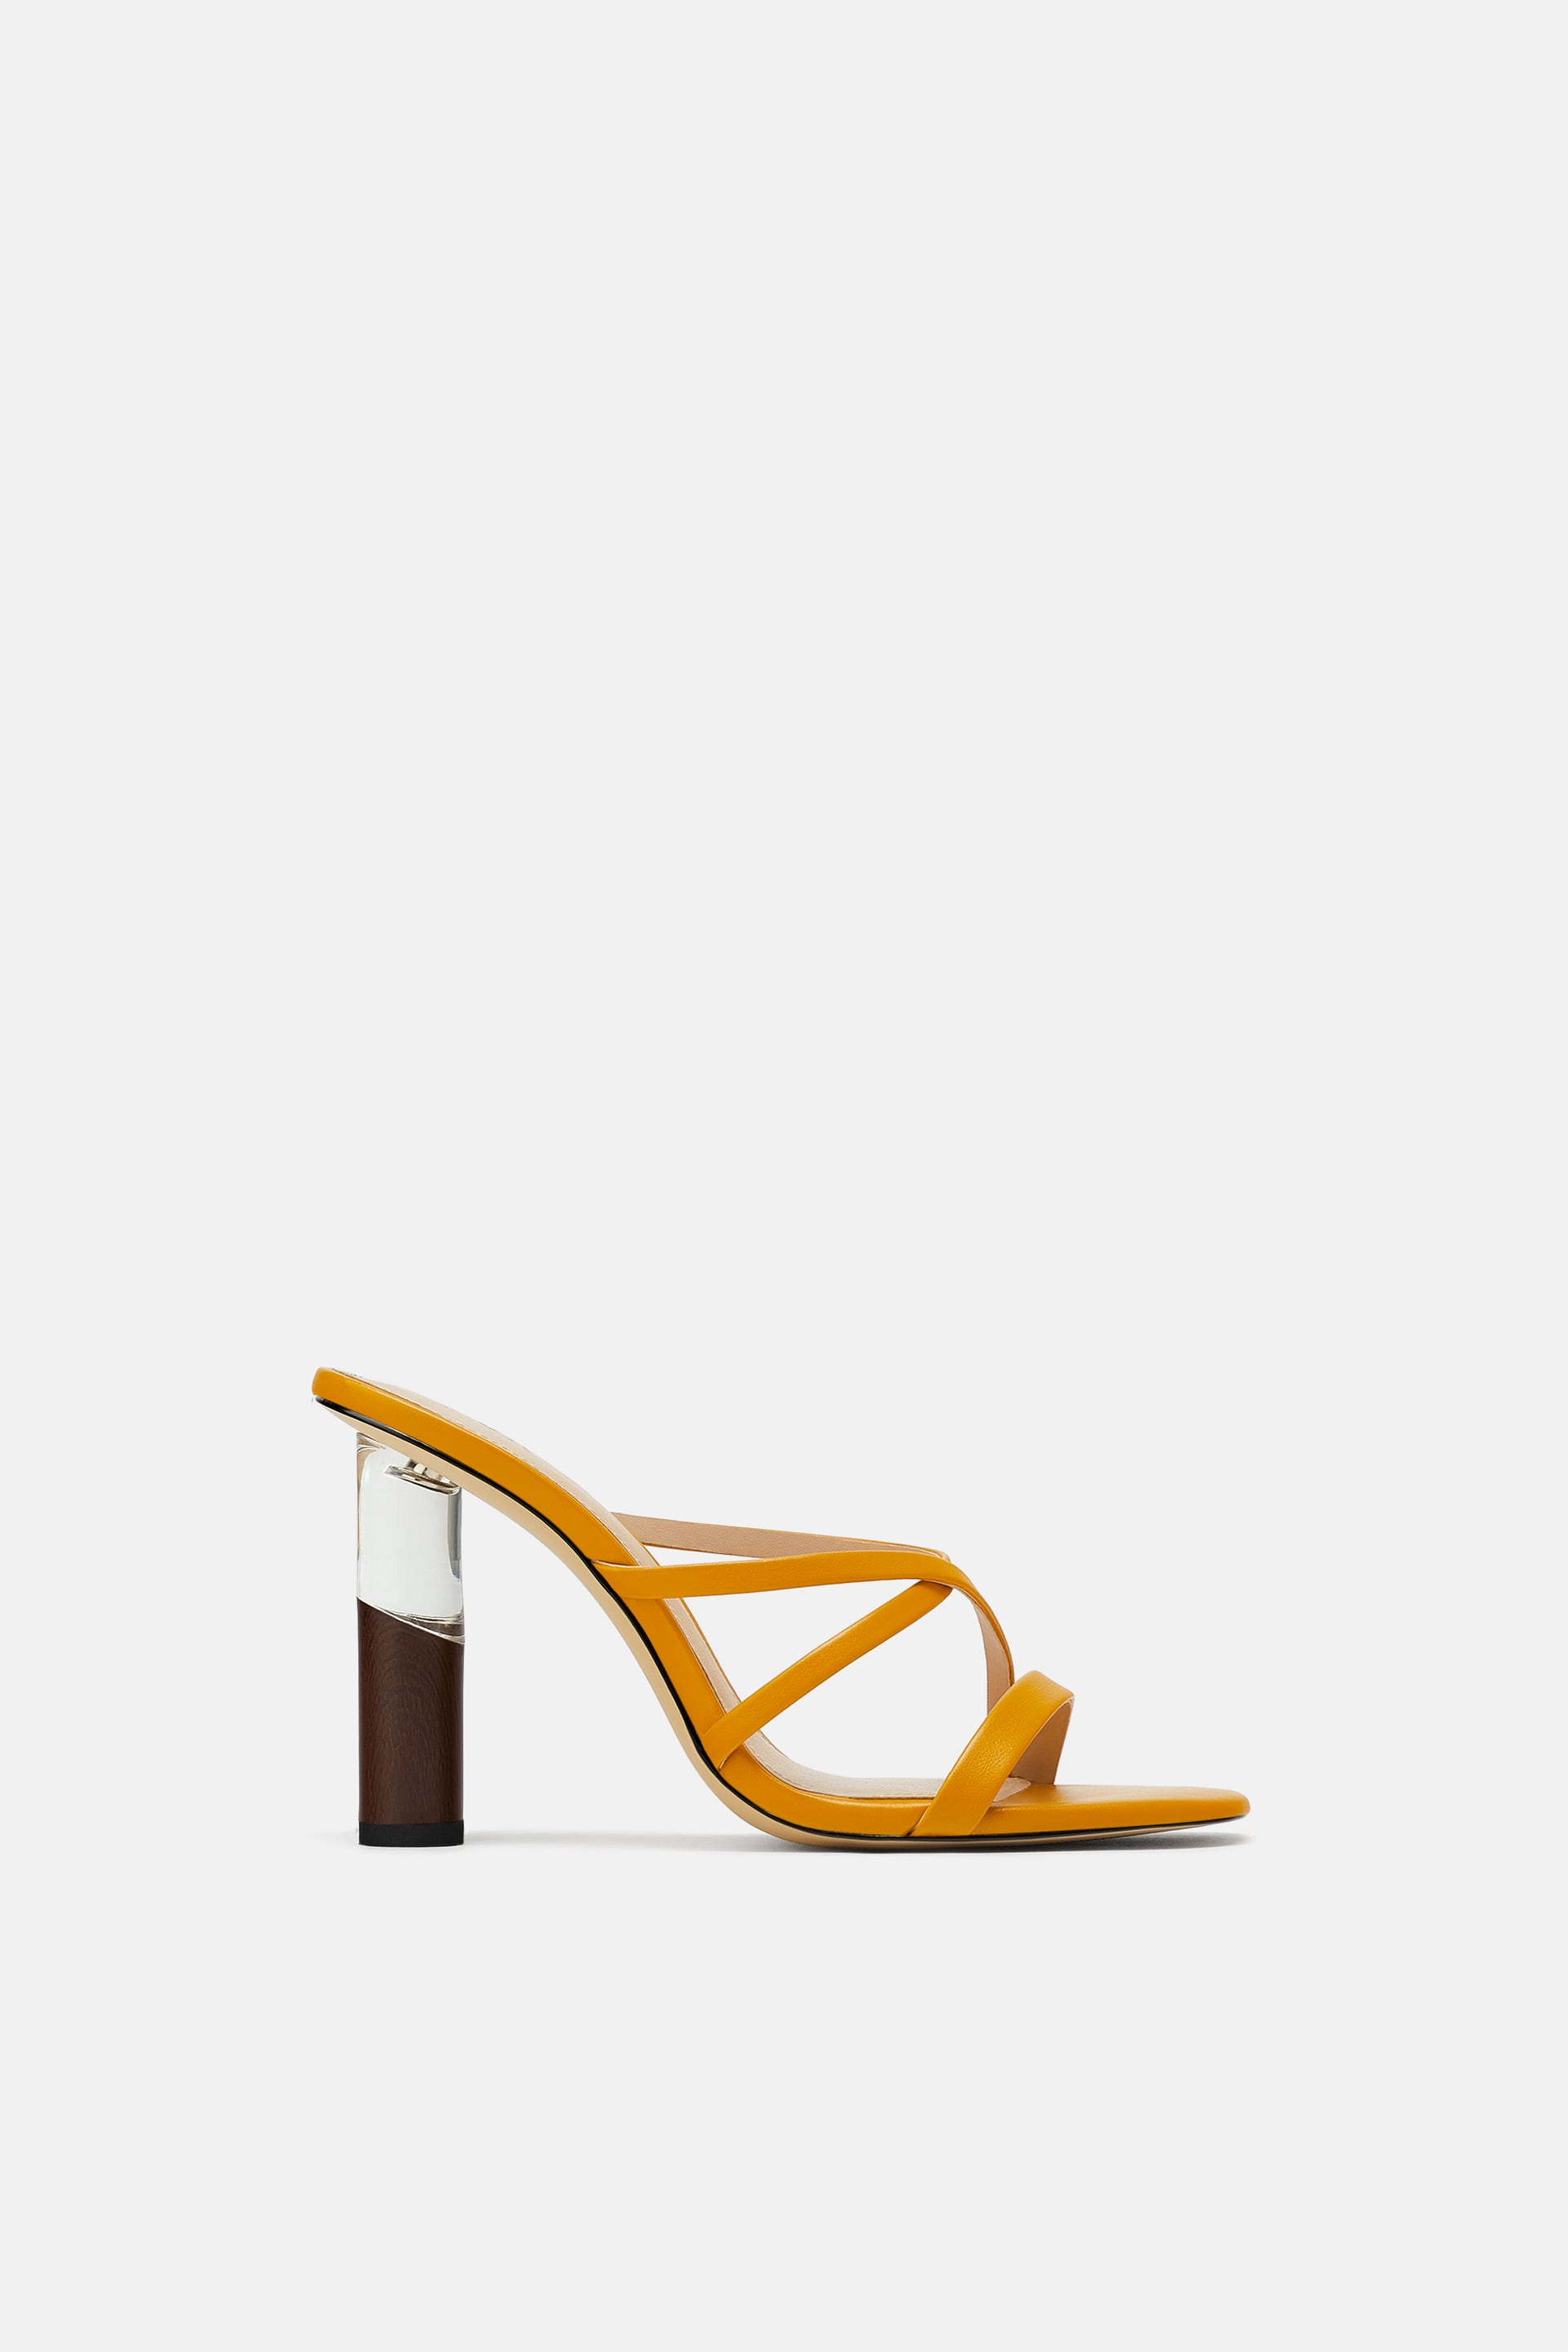 Contrasting Round Heeled Sandals